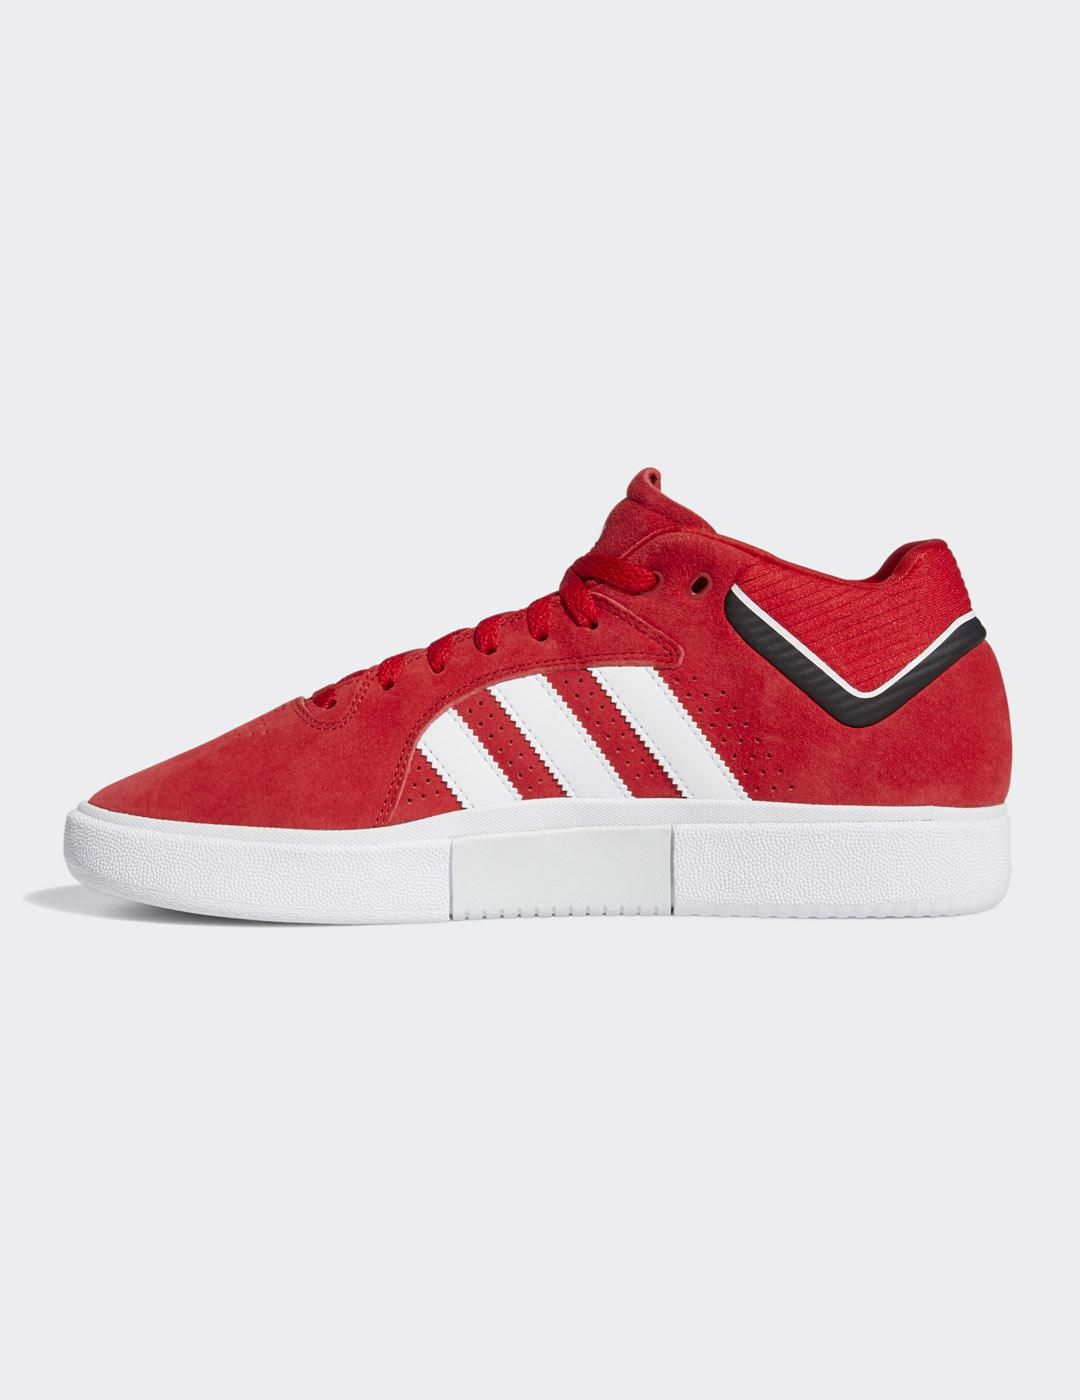 Zapatillas Adidas TYSHAWN - Scarlet White